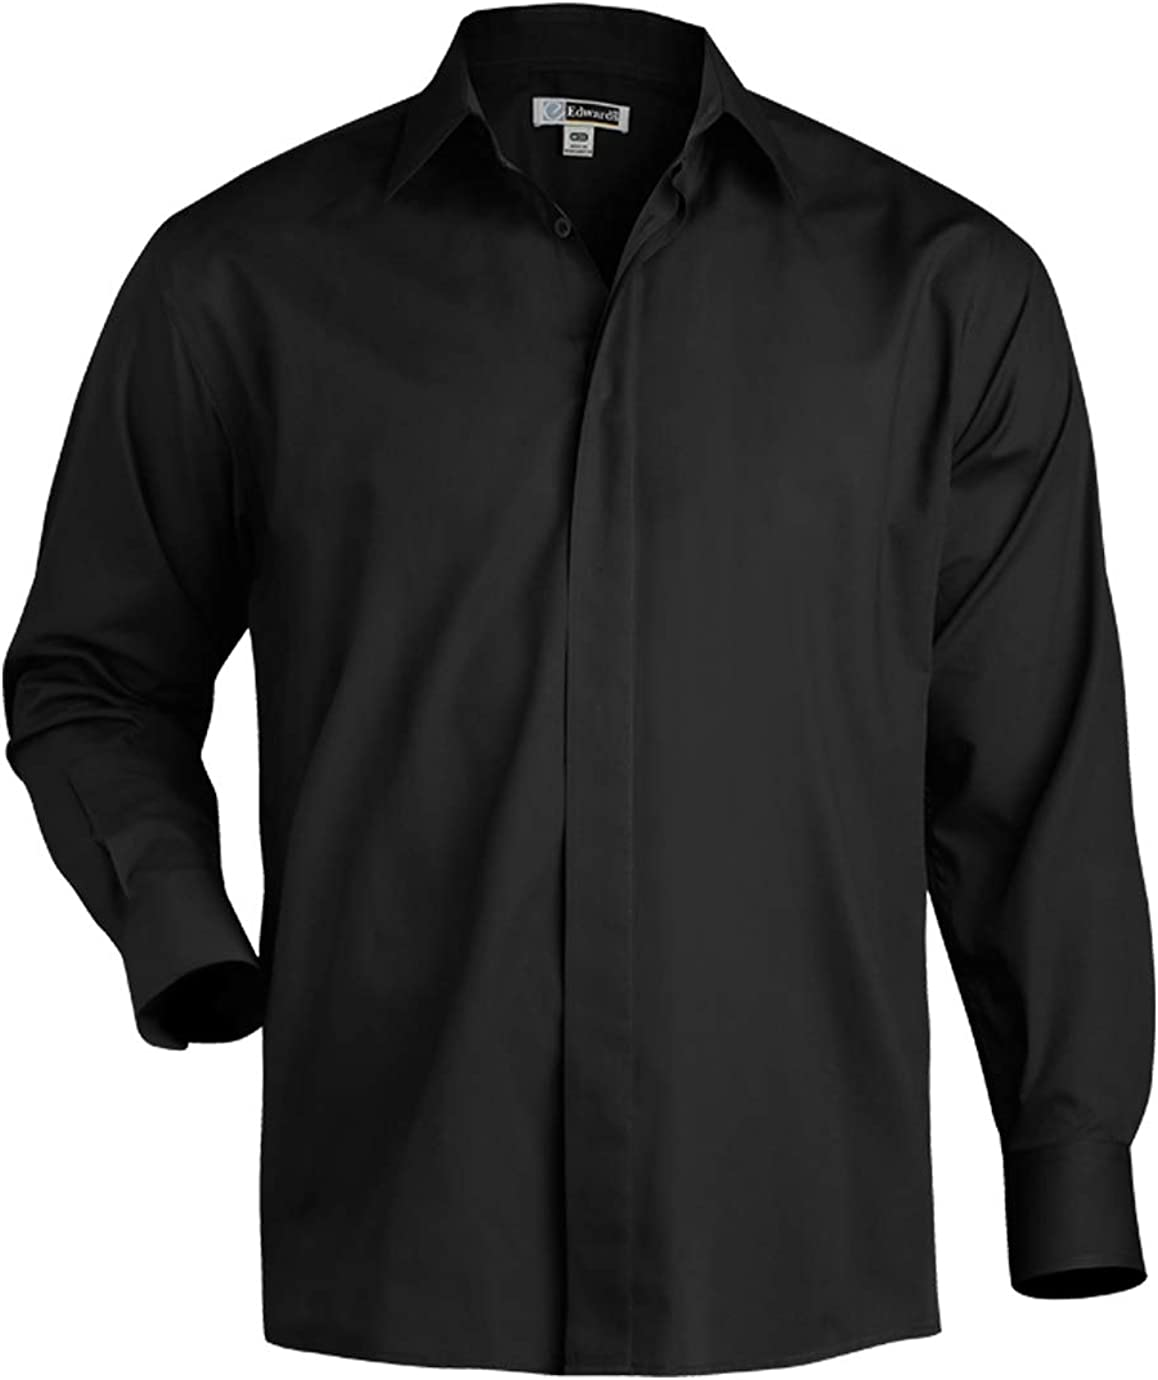 Edwards Garment Men's Big and Tall Covered Placket Cafe Shirt